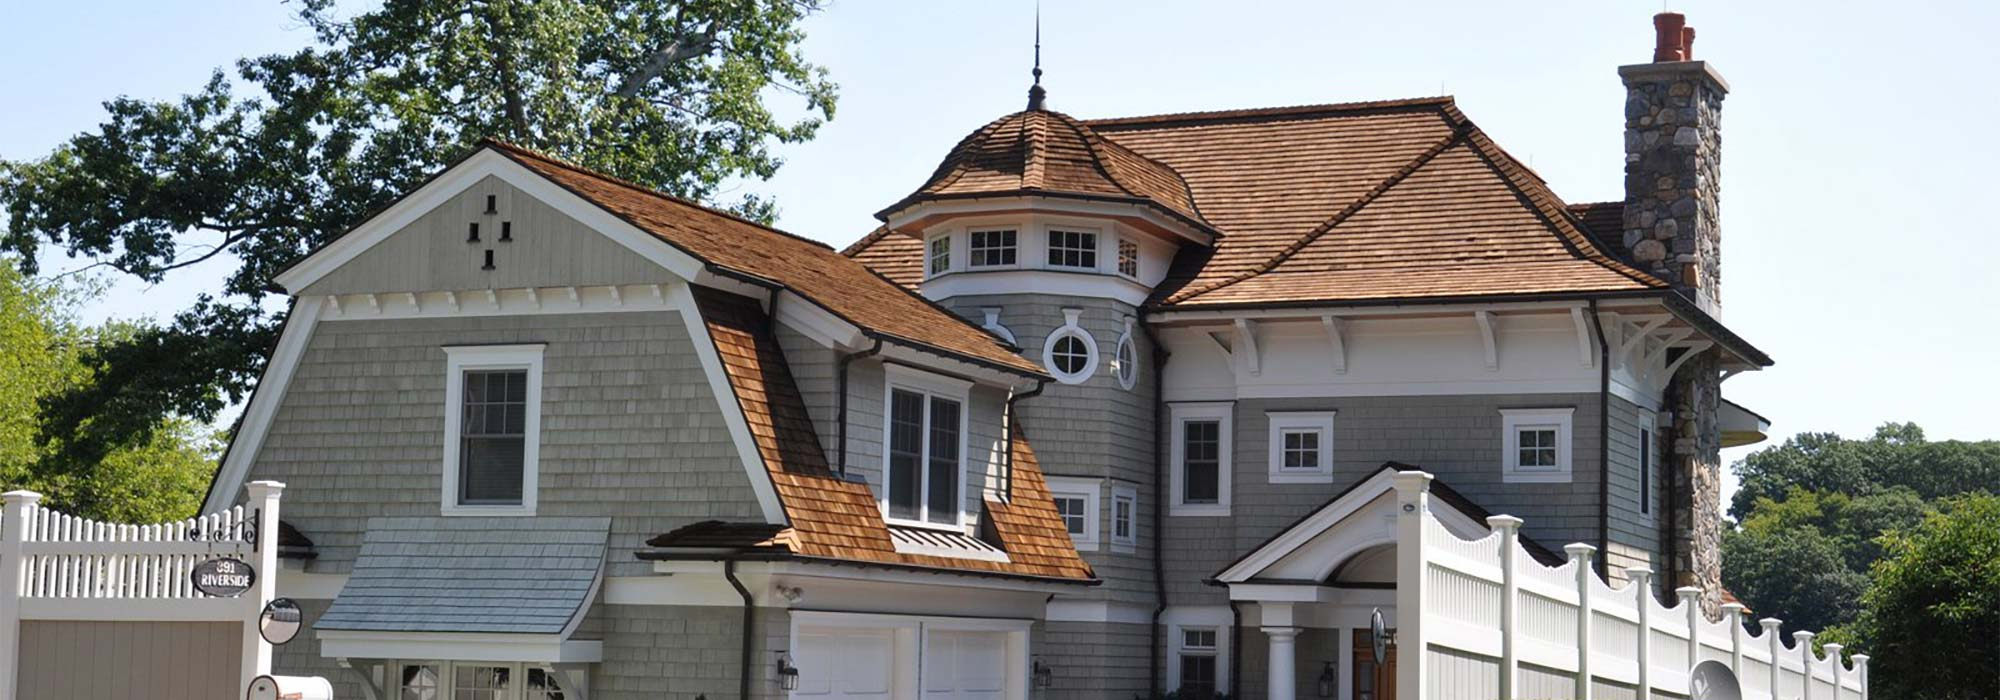 Restored Cedar Roof CT